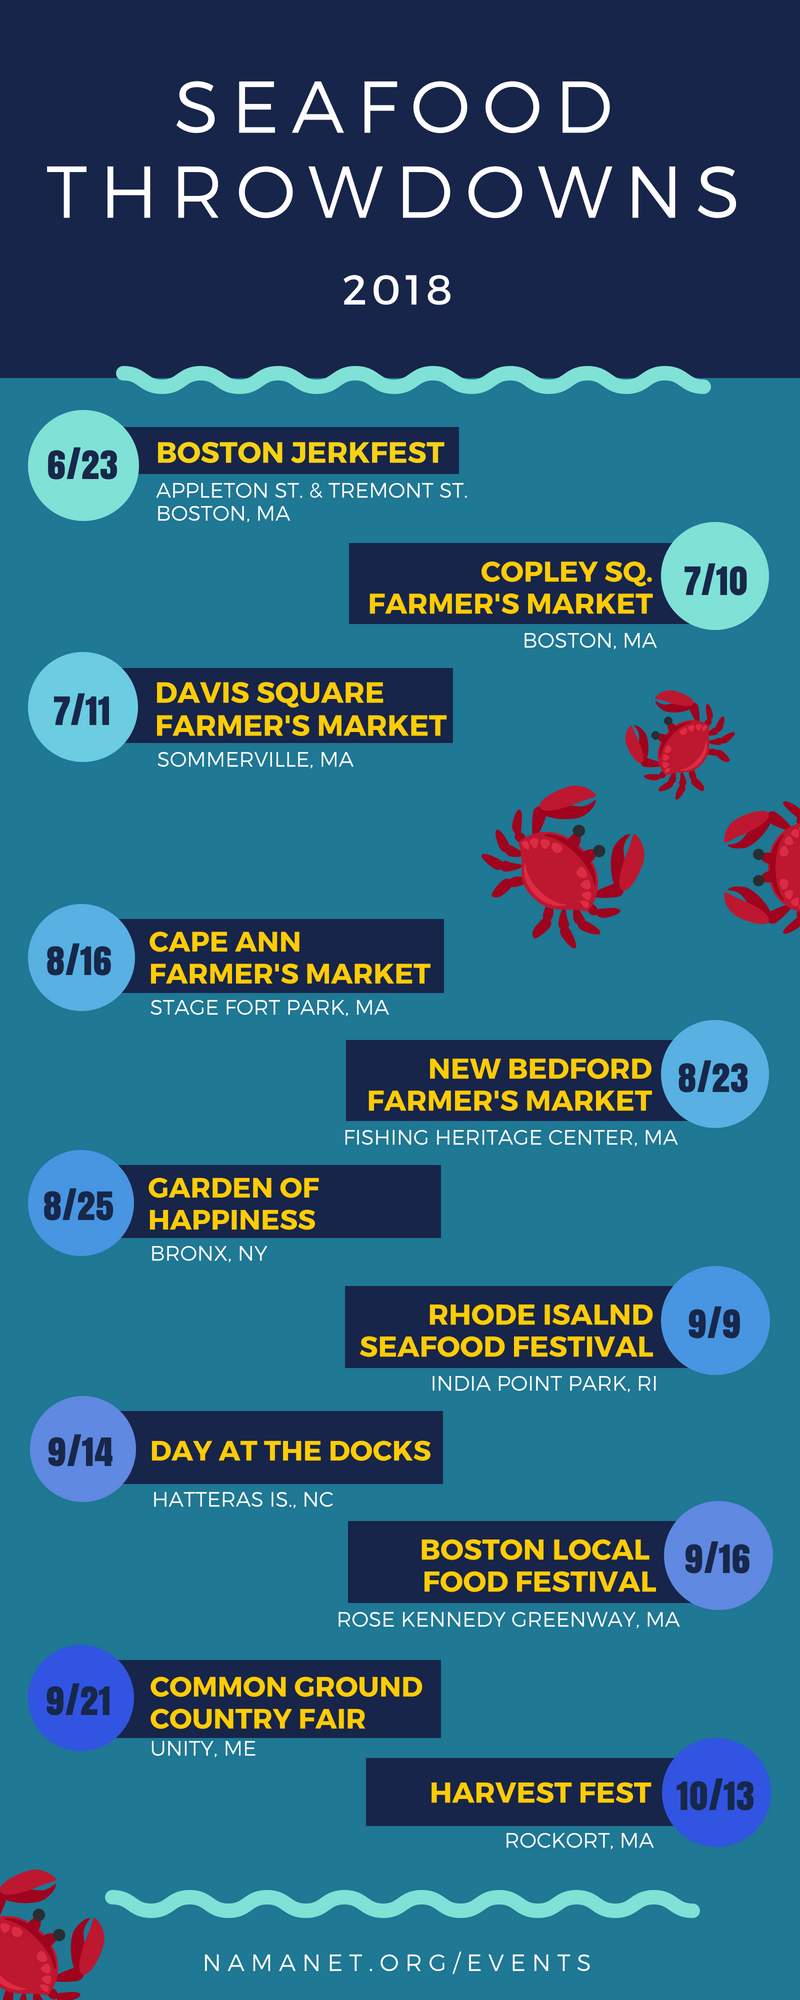 2018 Seafood Throwdown schedule